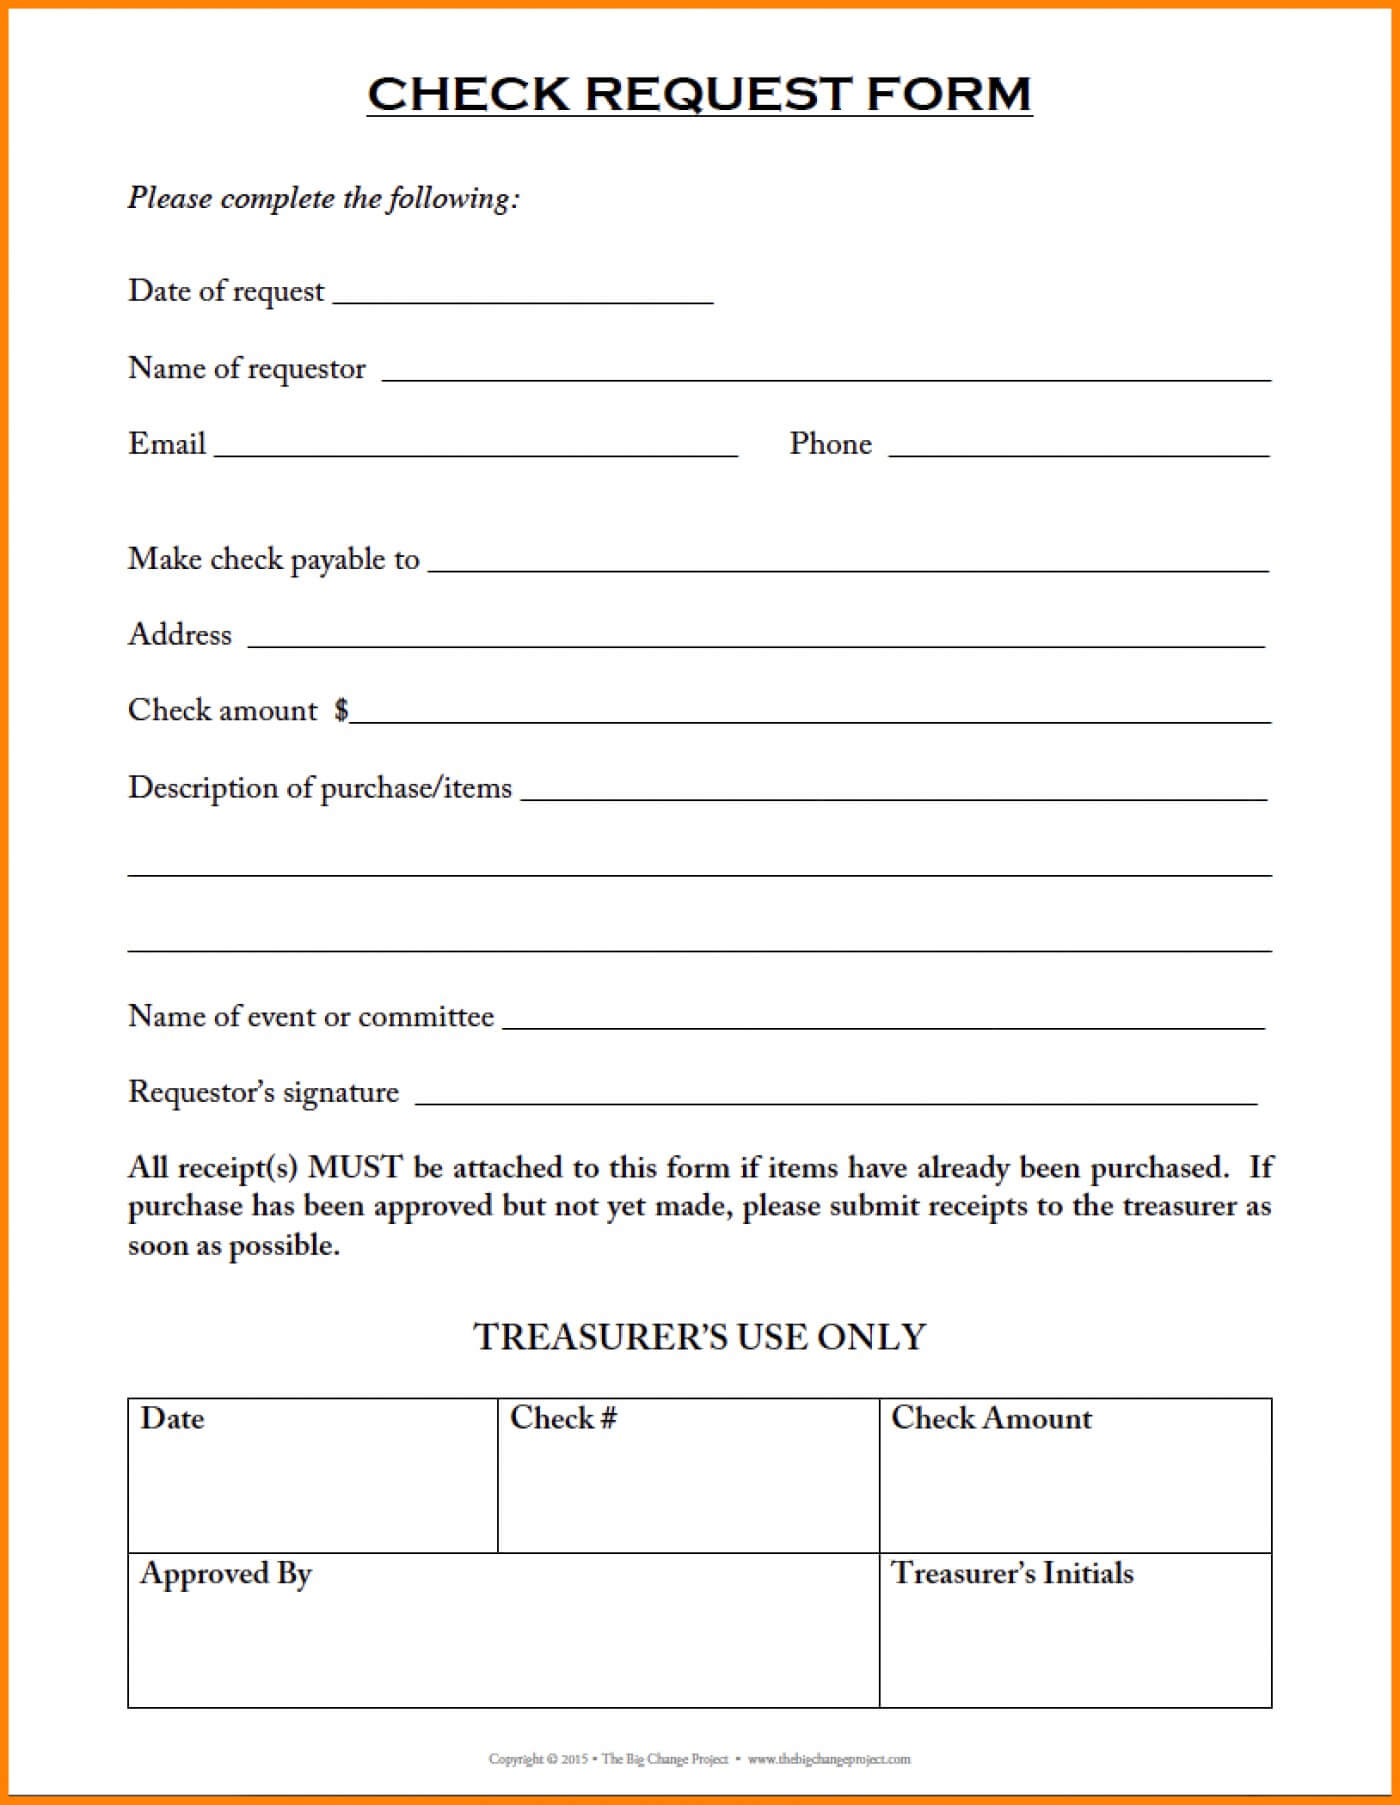 013 Check Request Form Template Excel Free Project Elegant Throughout Check Request Template Word